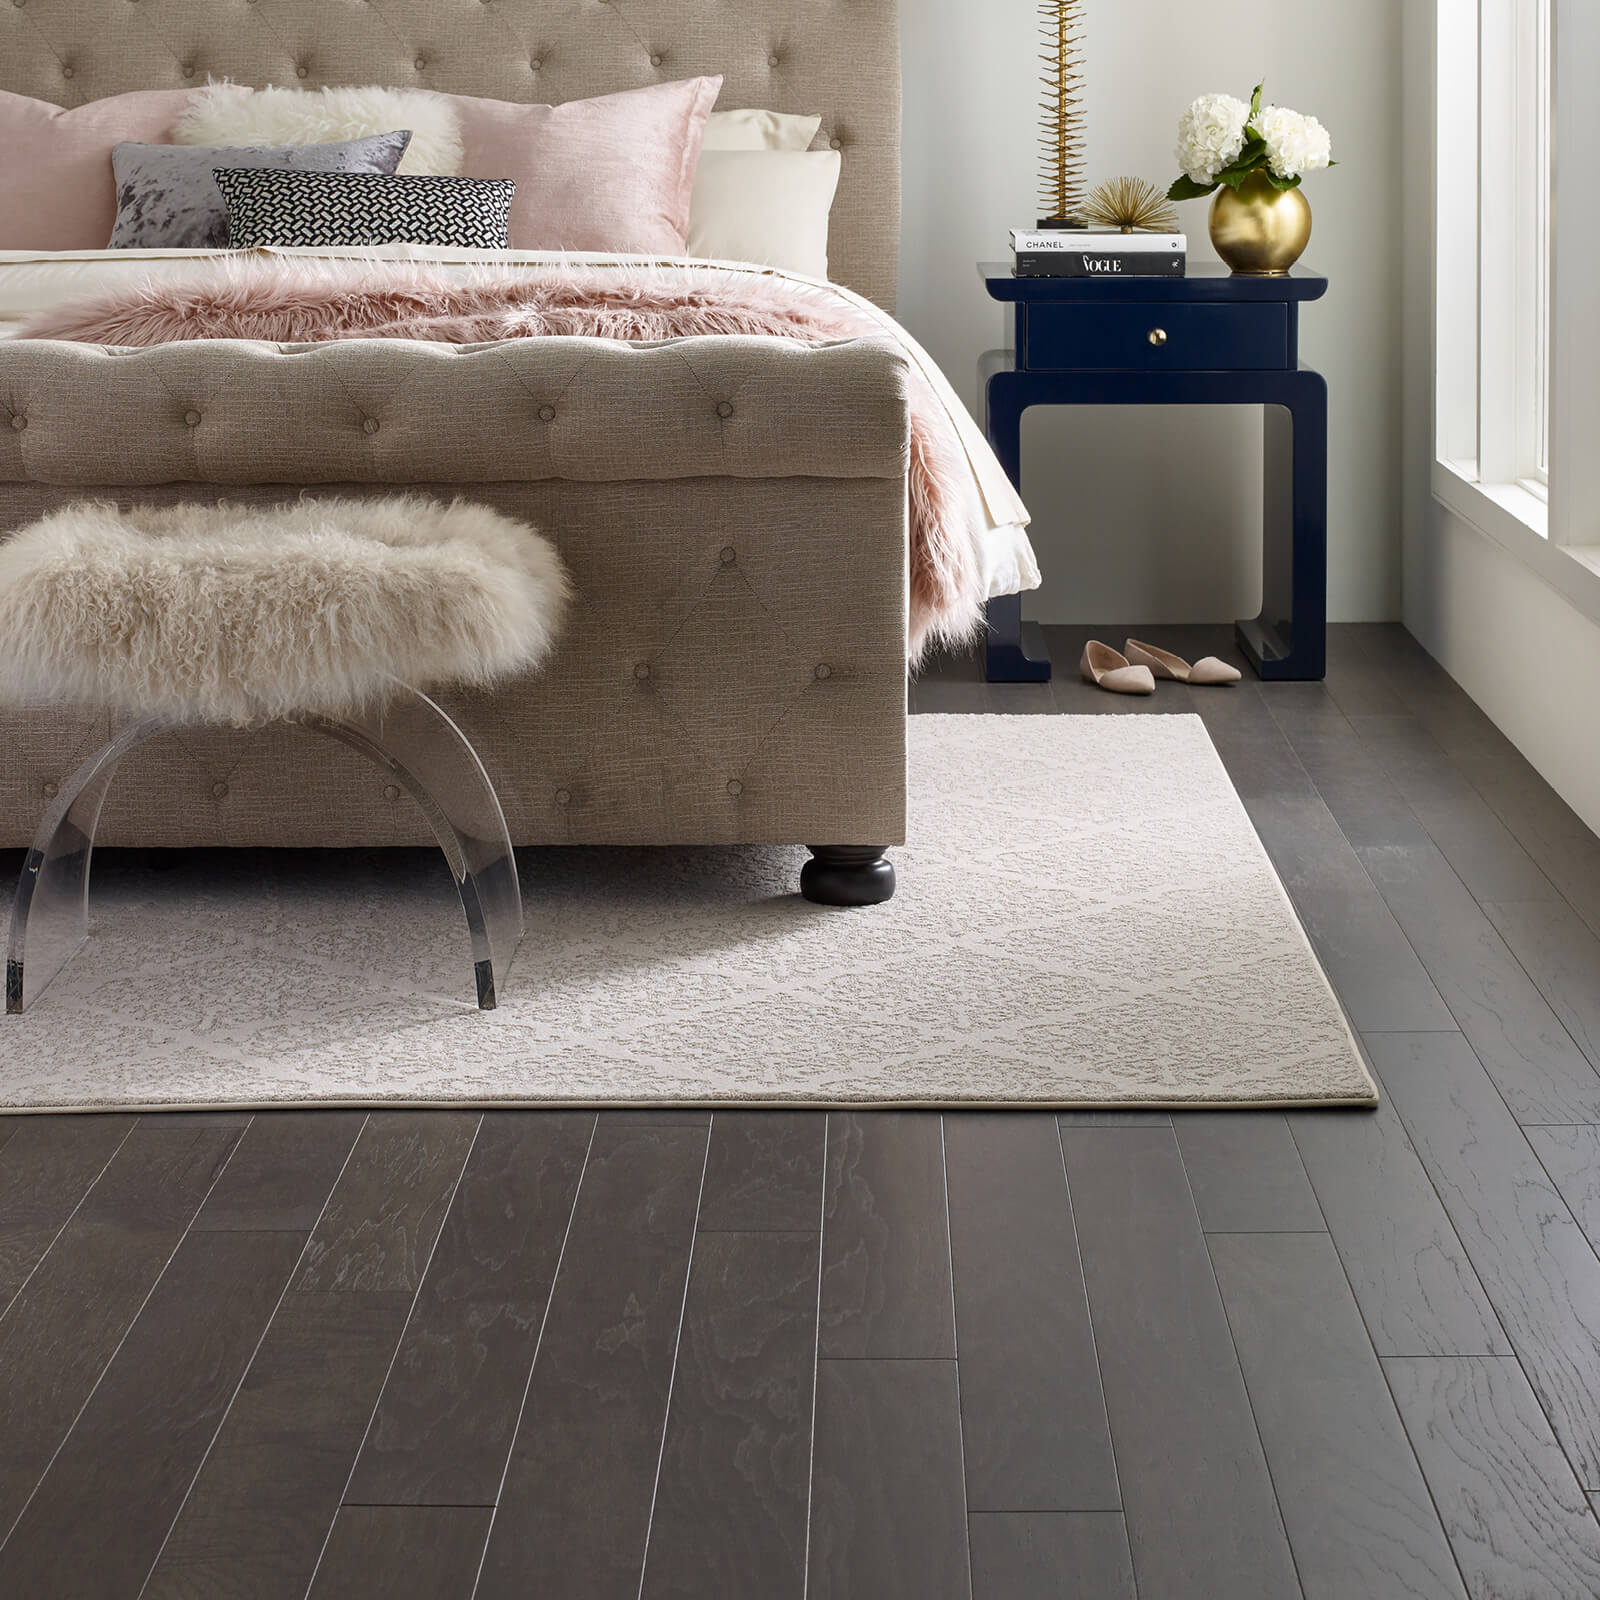 Greystone Chateau Fare Urban Glamour Bedroom Rug